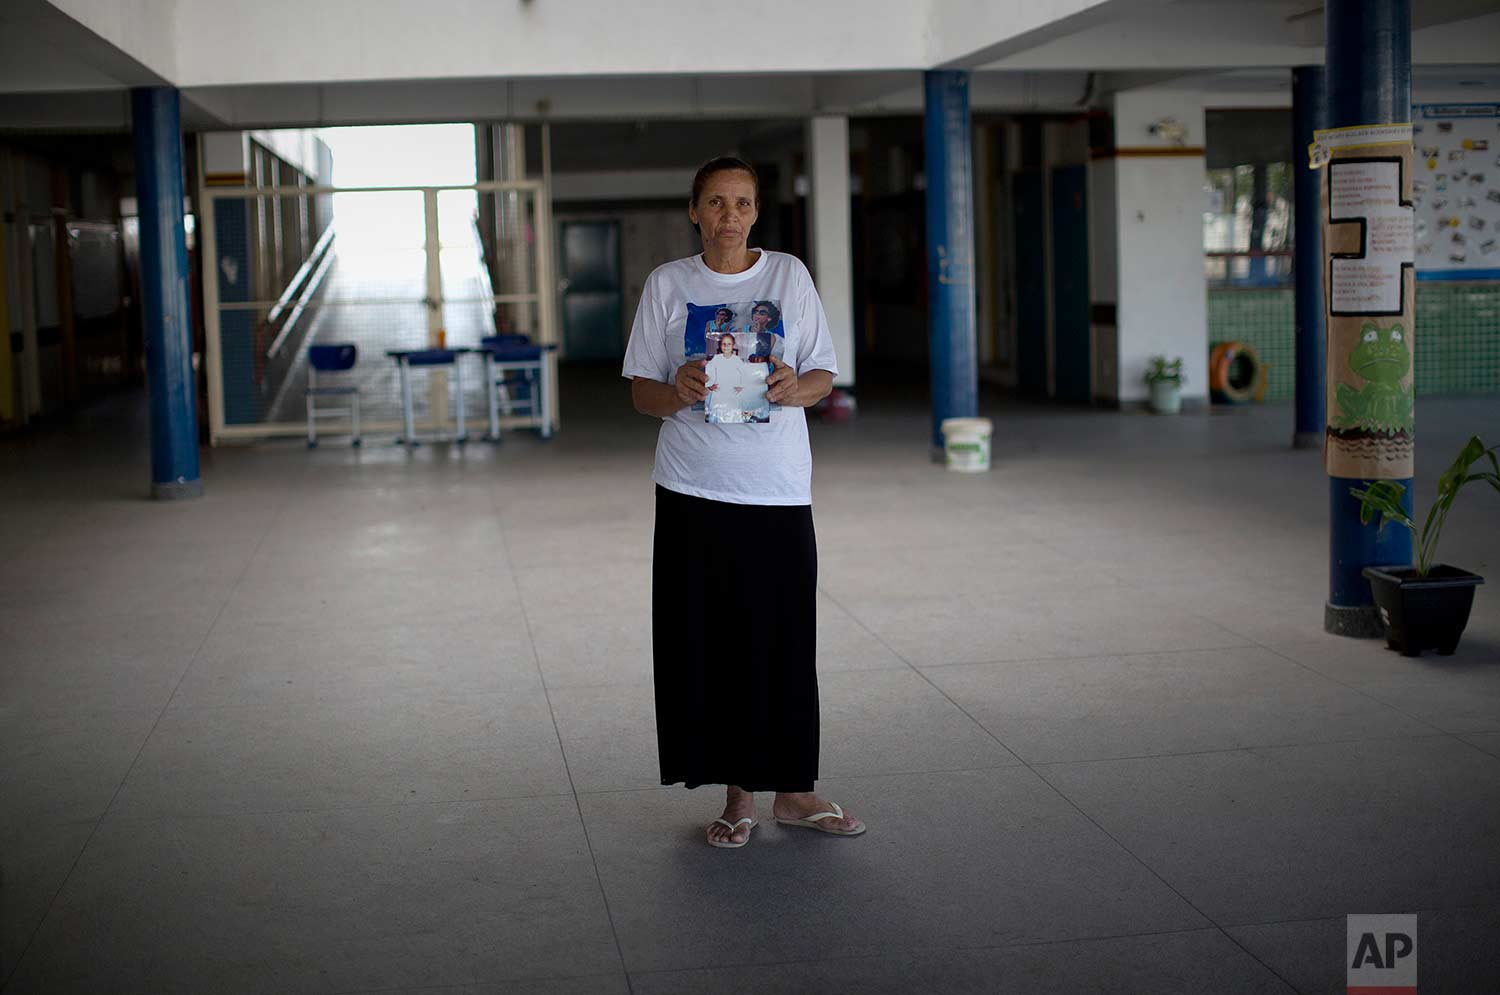 In this July 26, 2017 photo, Rosilene Alves Ferreira, mother of Maria Eduarda, stands in the exact spot where her daughter lay bleeding to death, inside the Daniel Piza Municipal School in the Acari slum, Rio de Janeiro, Brazil. Maria Eduarda was shot three times on March 30. The shots that killed the 13-year-old came from police targeting armed suspects near the school. (AP Photo/Silvia Izquierdo)